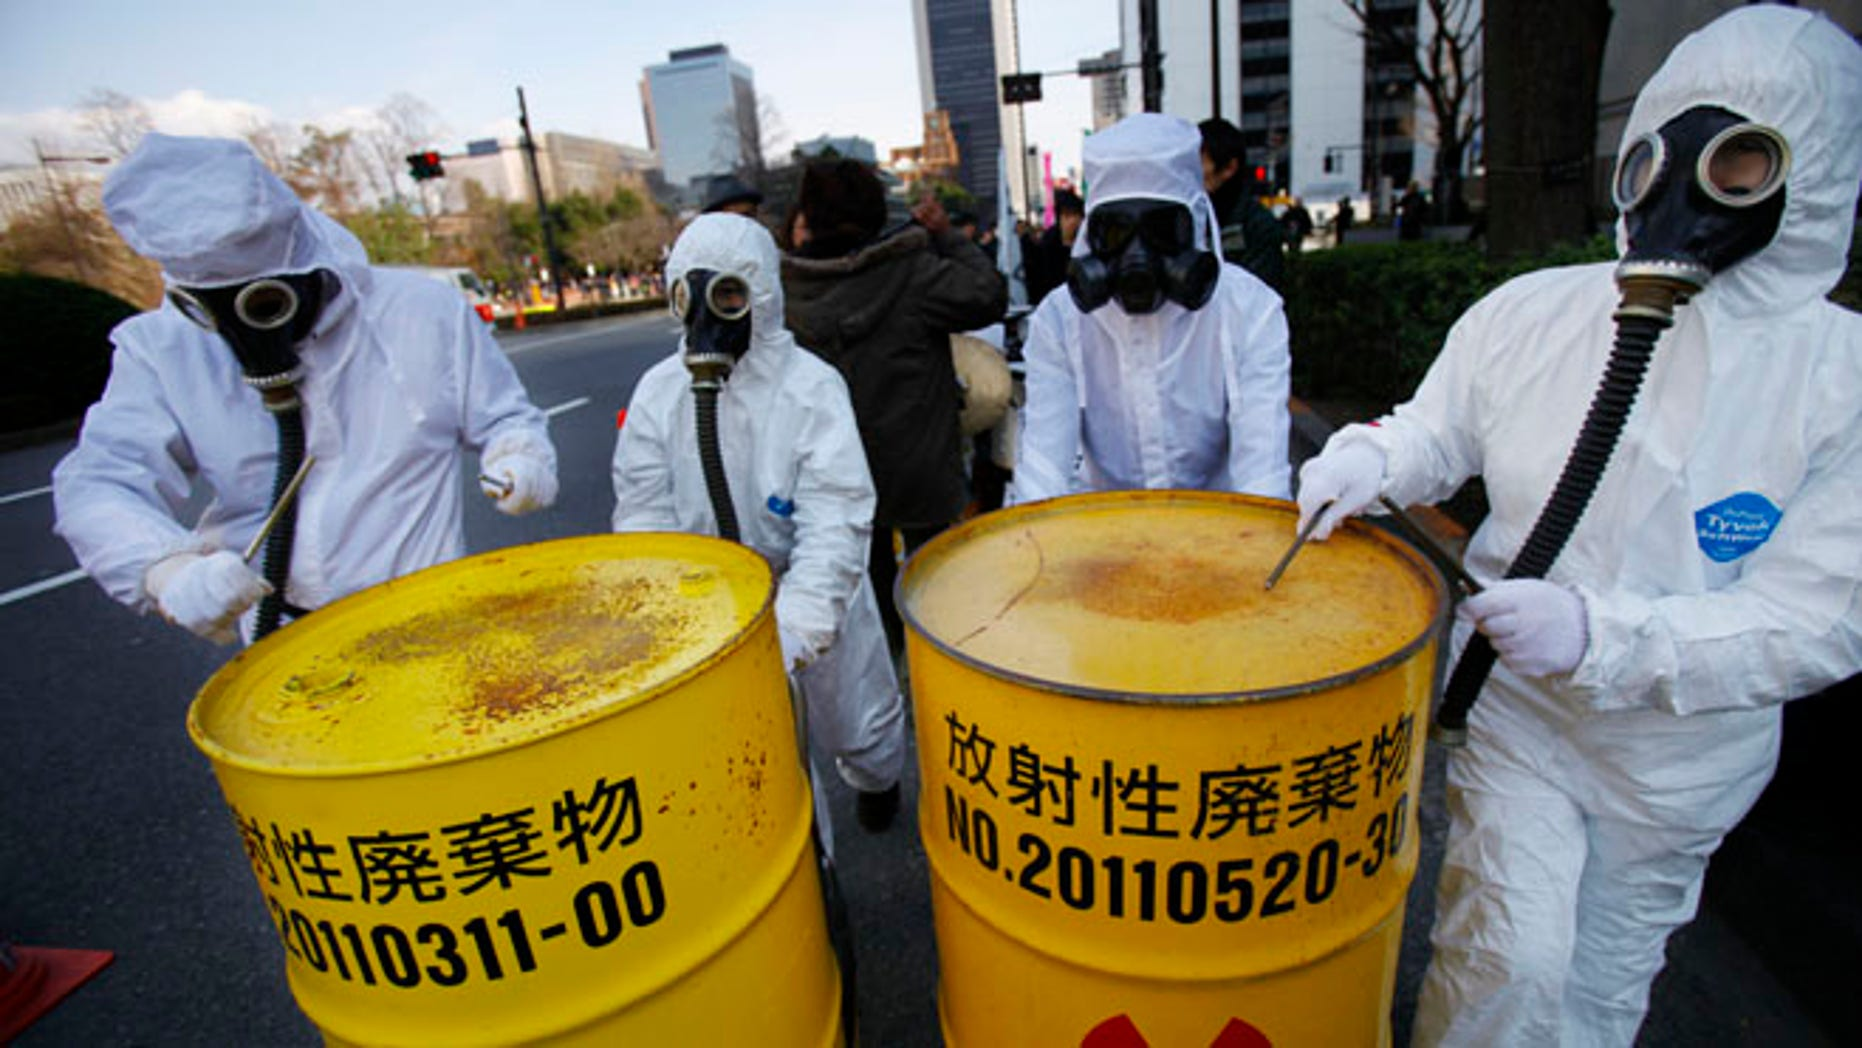 March 9, 2014: Costumed protesters beat drum cans during an anti-nuclear plant demonstration in Tokyo.